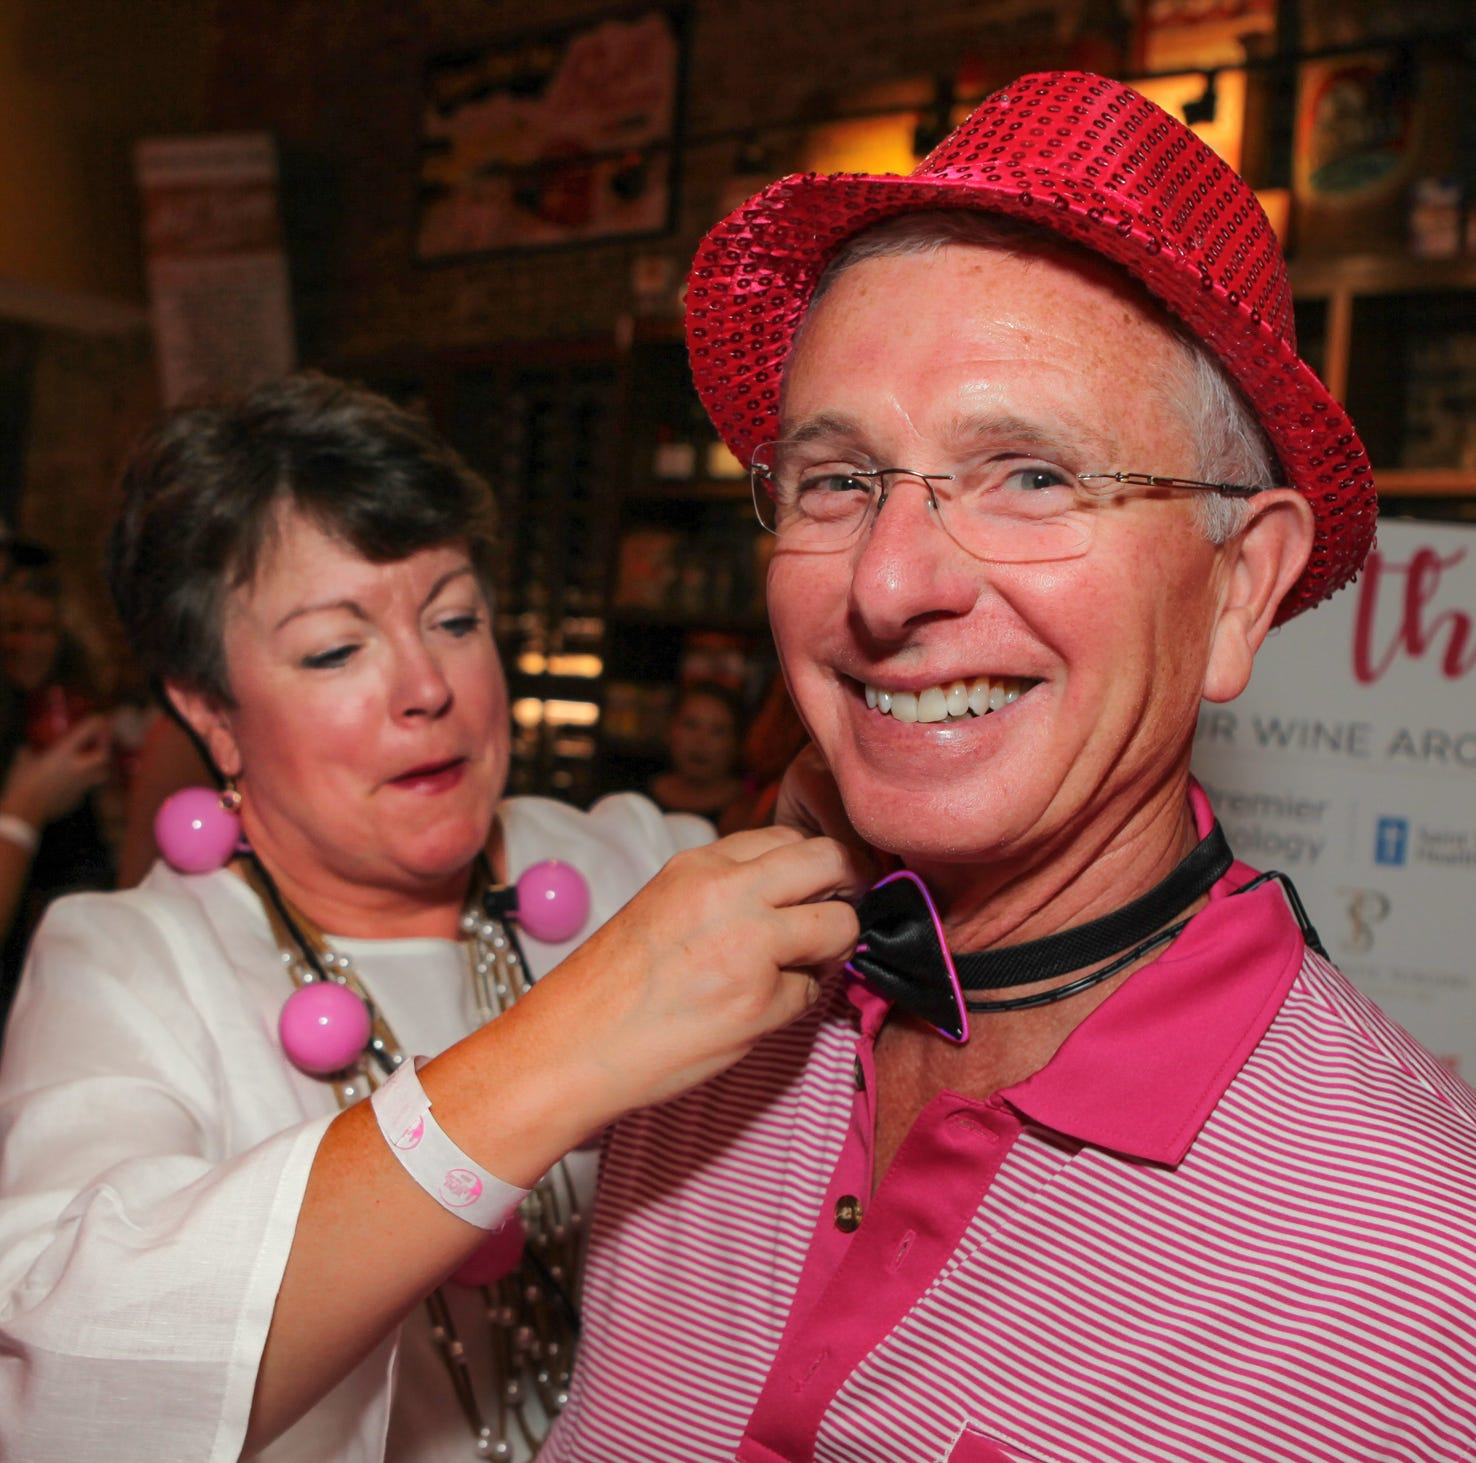 Wine Around the Square draws spirit lovers, breast cancer fighters